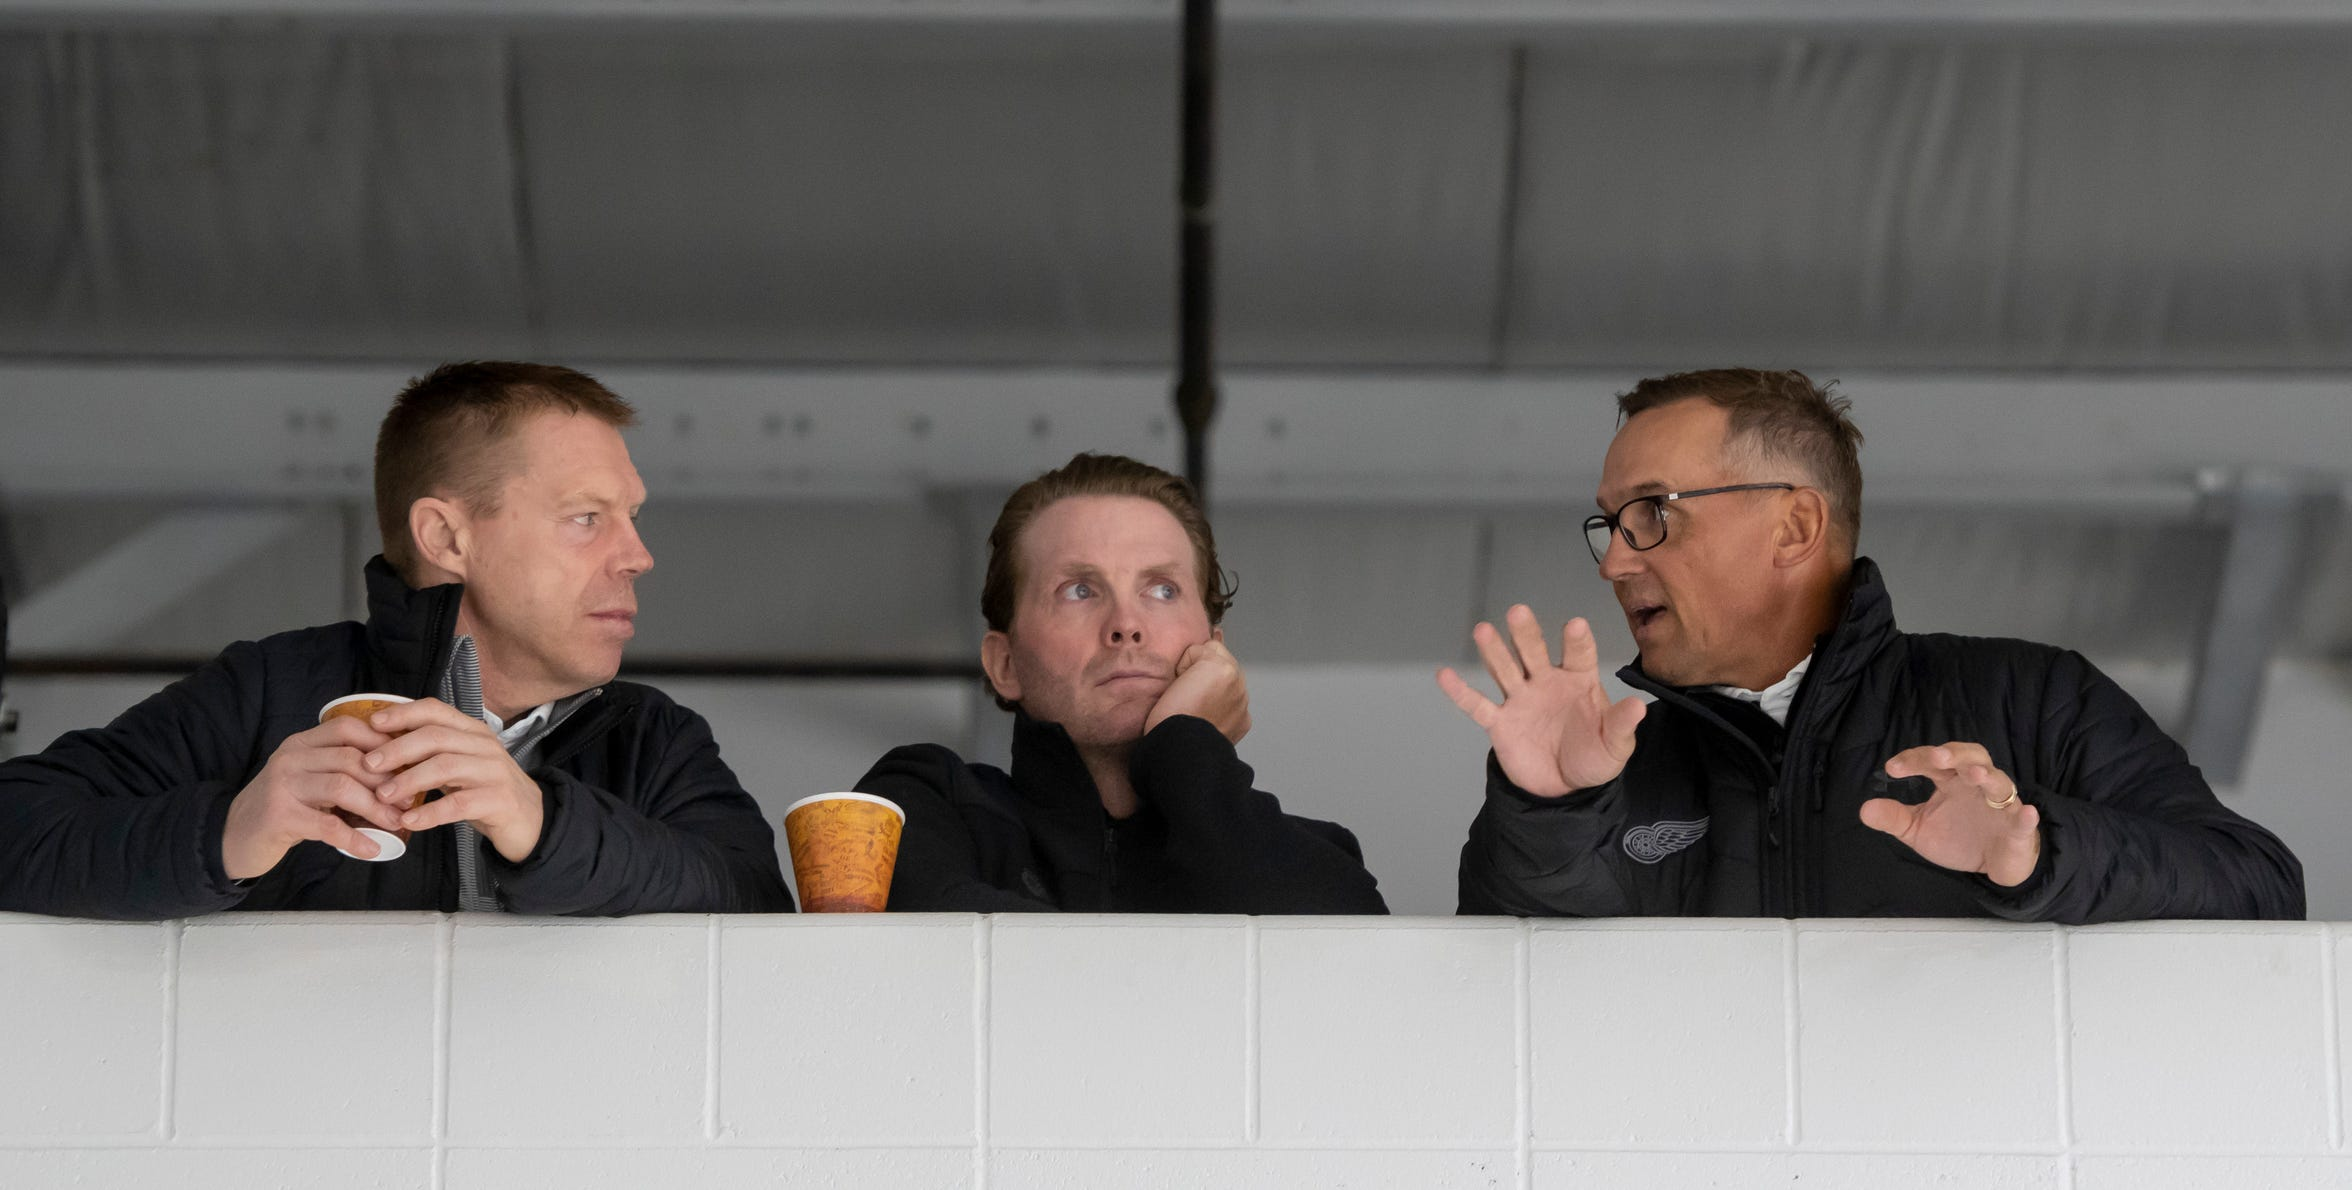 (From left) Director of Amateur Scouting Kris Draper, Assistant Director of Player Development Dan Cleary, and General Manager Steve Yzerman chat during the Red Wings training camp at Centre Ice Arena, in Traverse City.  All three were former players.